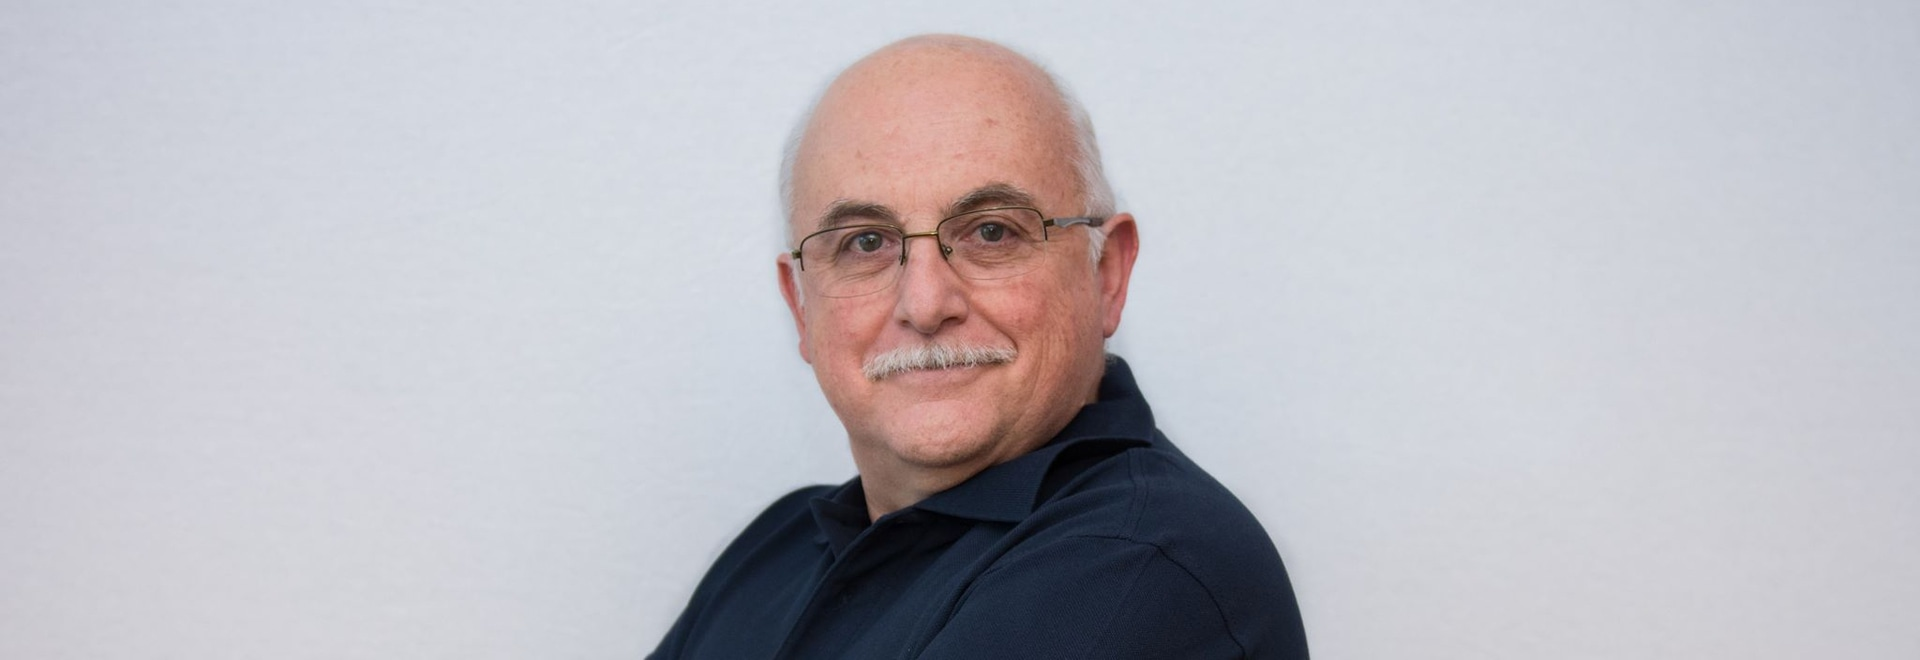 In a free webinar on Tuesday, 19 May, Dr Francisco Molina will talk about how to prevent side effects on the gingivae during orthodontic treatment.